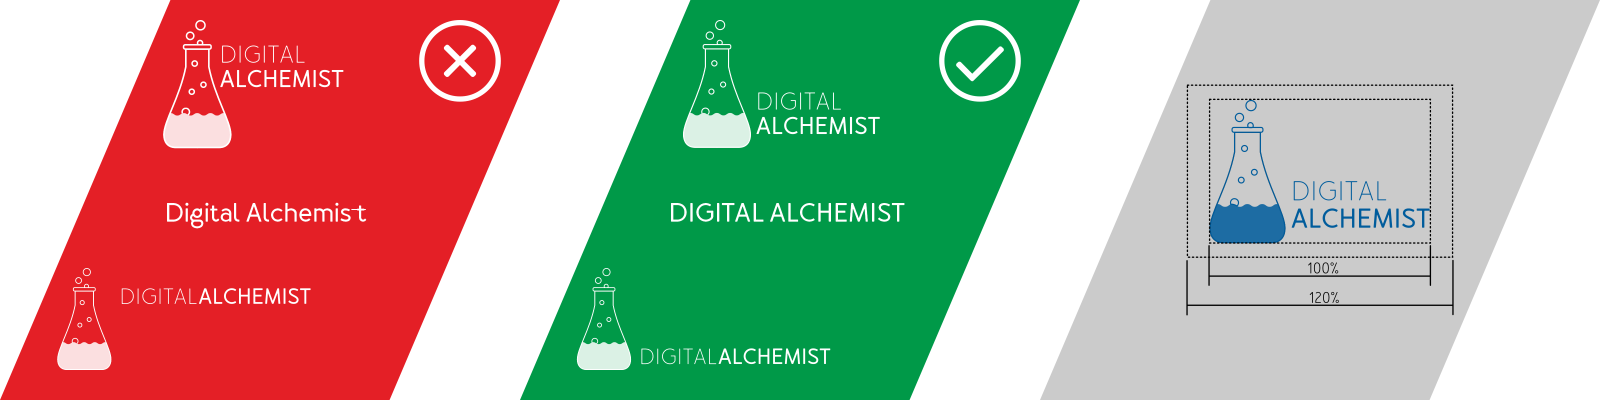 digital alchemist brand logo design configurations